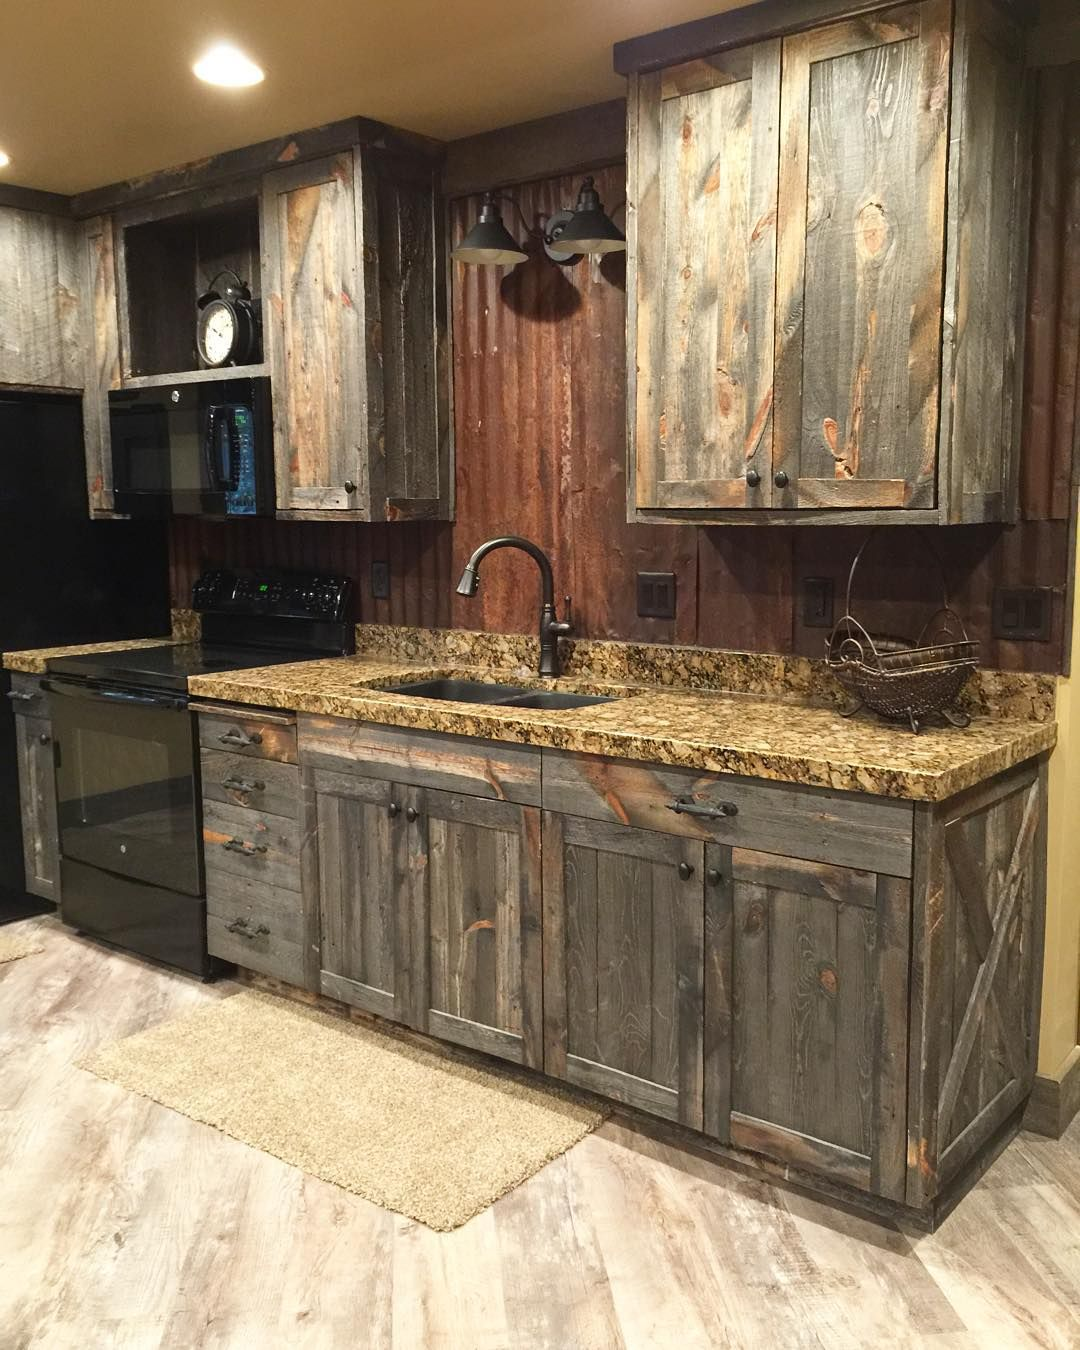 Exceptional A Little Barnwood Kitchen Cabinets And Corrugated Steel Backsplash. Love  How Rustic And Homey It